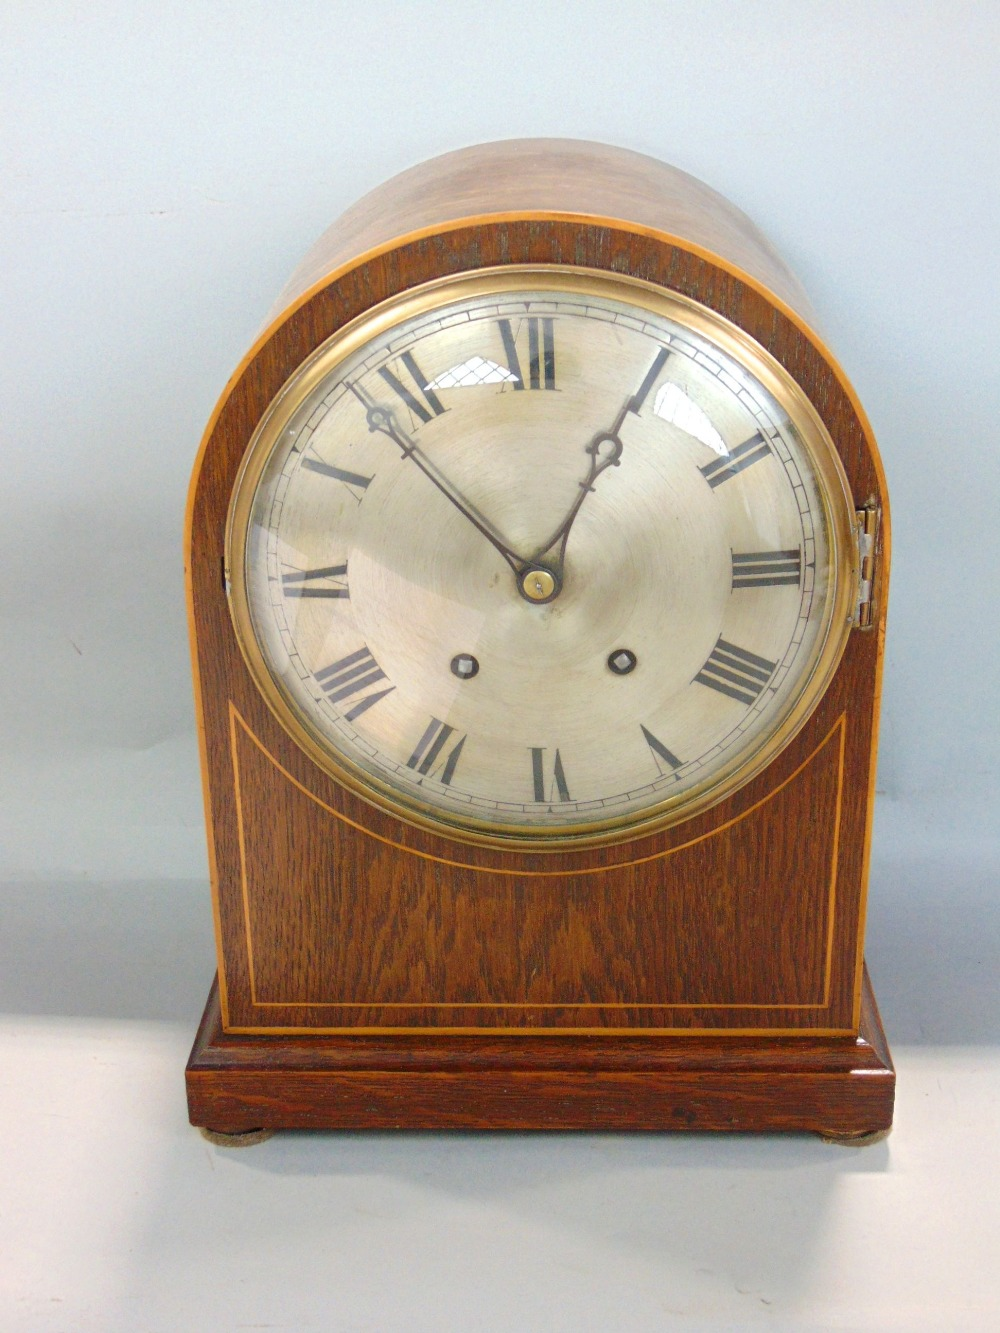 Lot 573 - Oak cased dome top two train mantel clock, silvered dial engraved with Roman numerals, striking on a